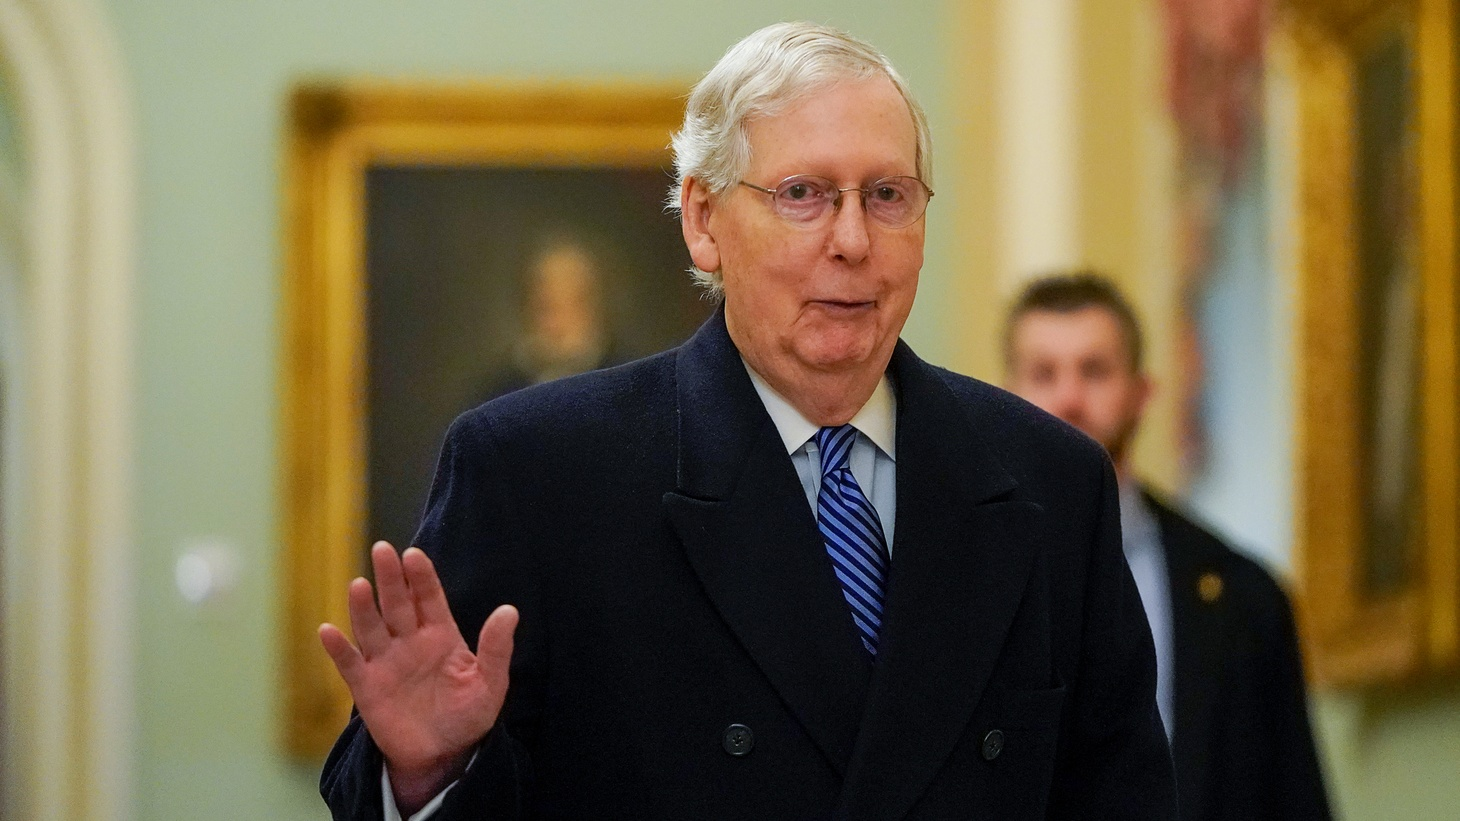 Senate Majority Leader Mitch McConnell (R-KY) arrives prior to opening arguments in the impeachment trial of U.S. President Donald Trump on Capitol Hill in Washington, U.S., January 22, 2020.